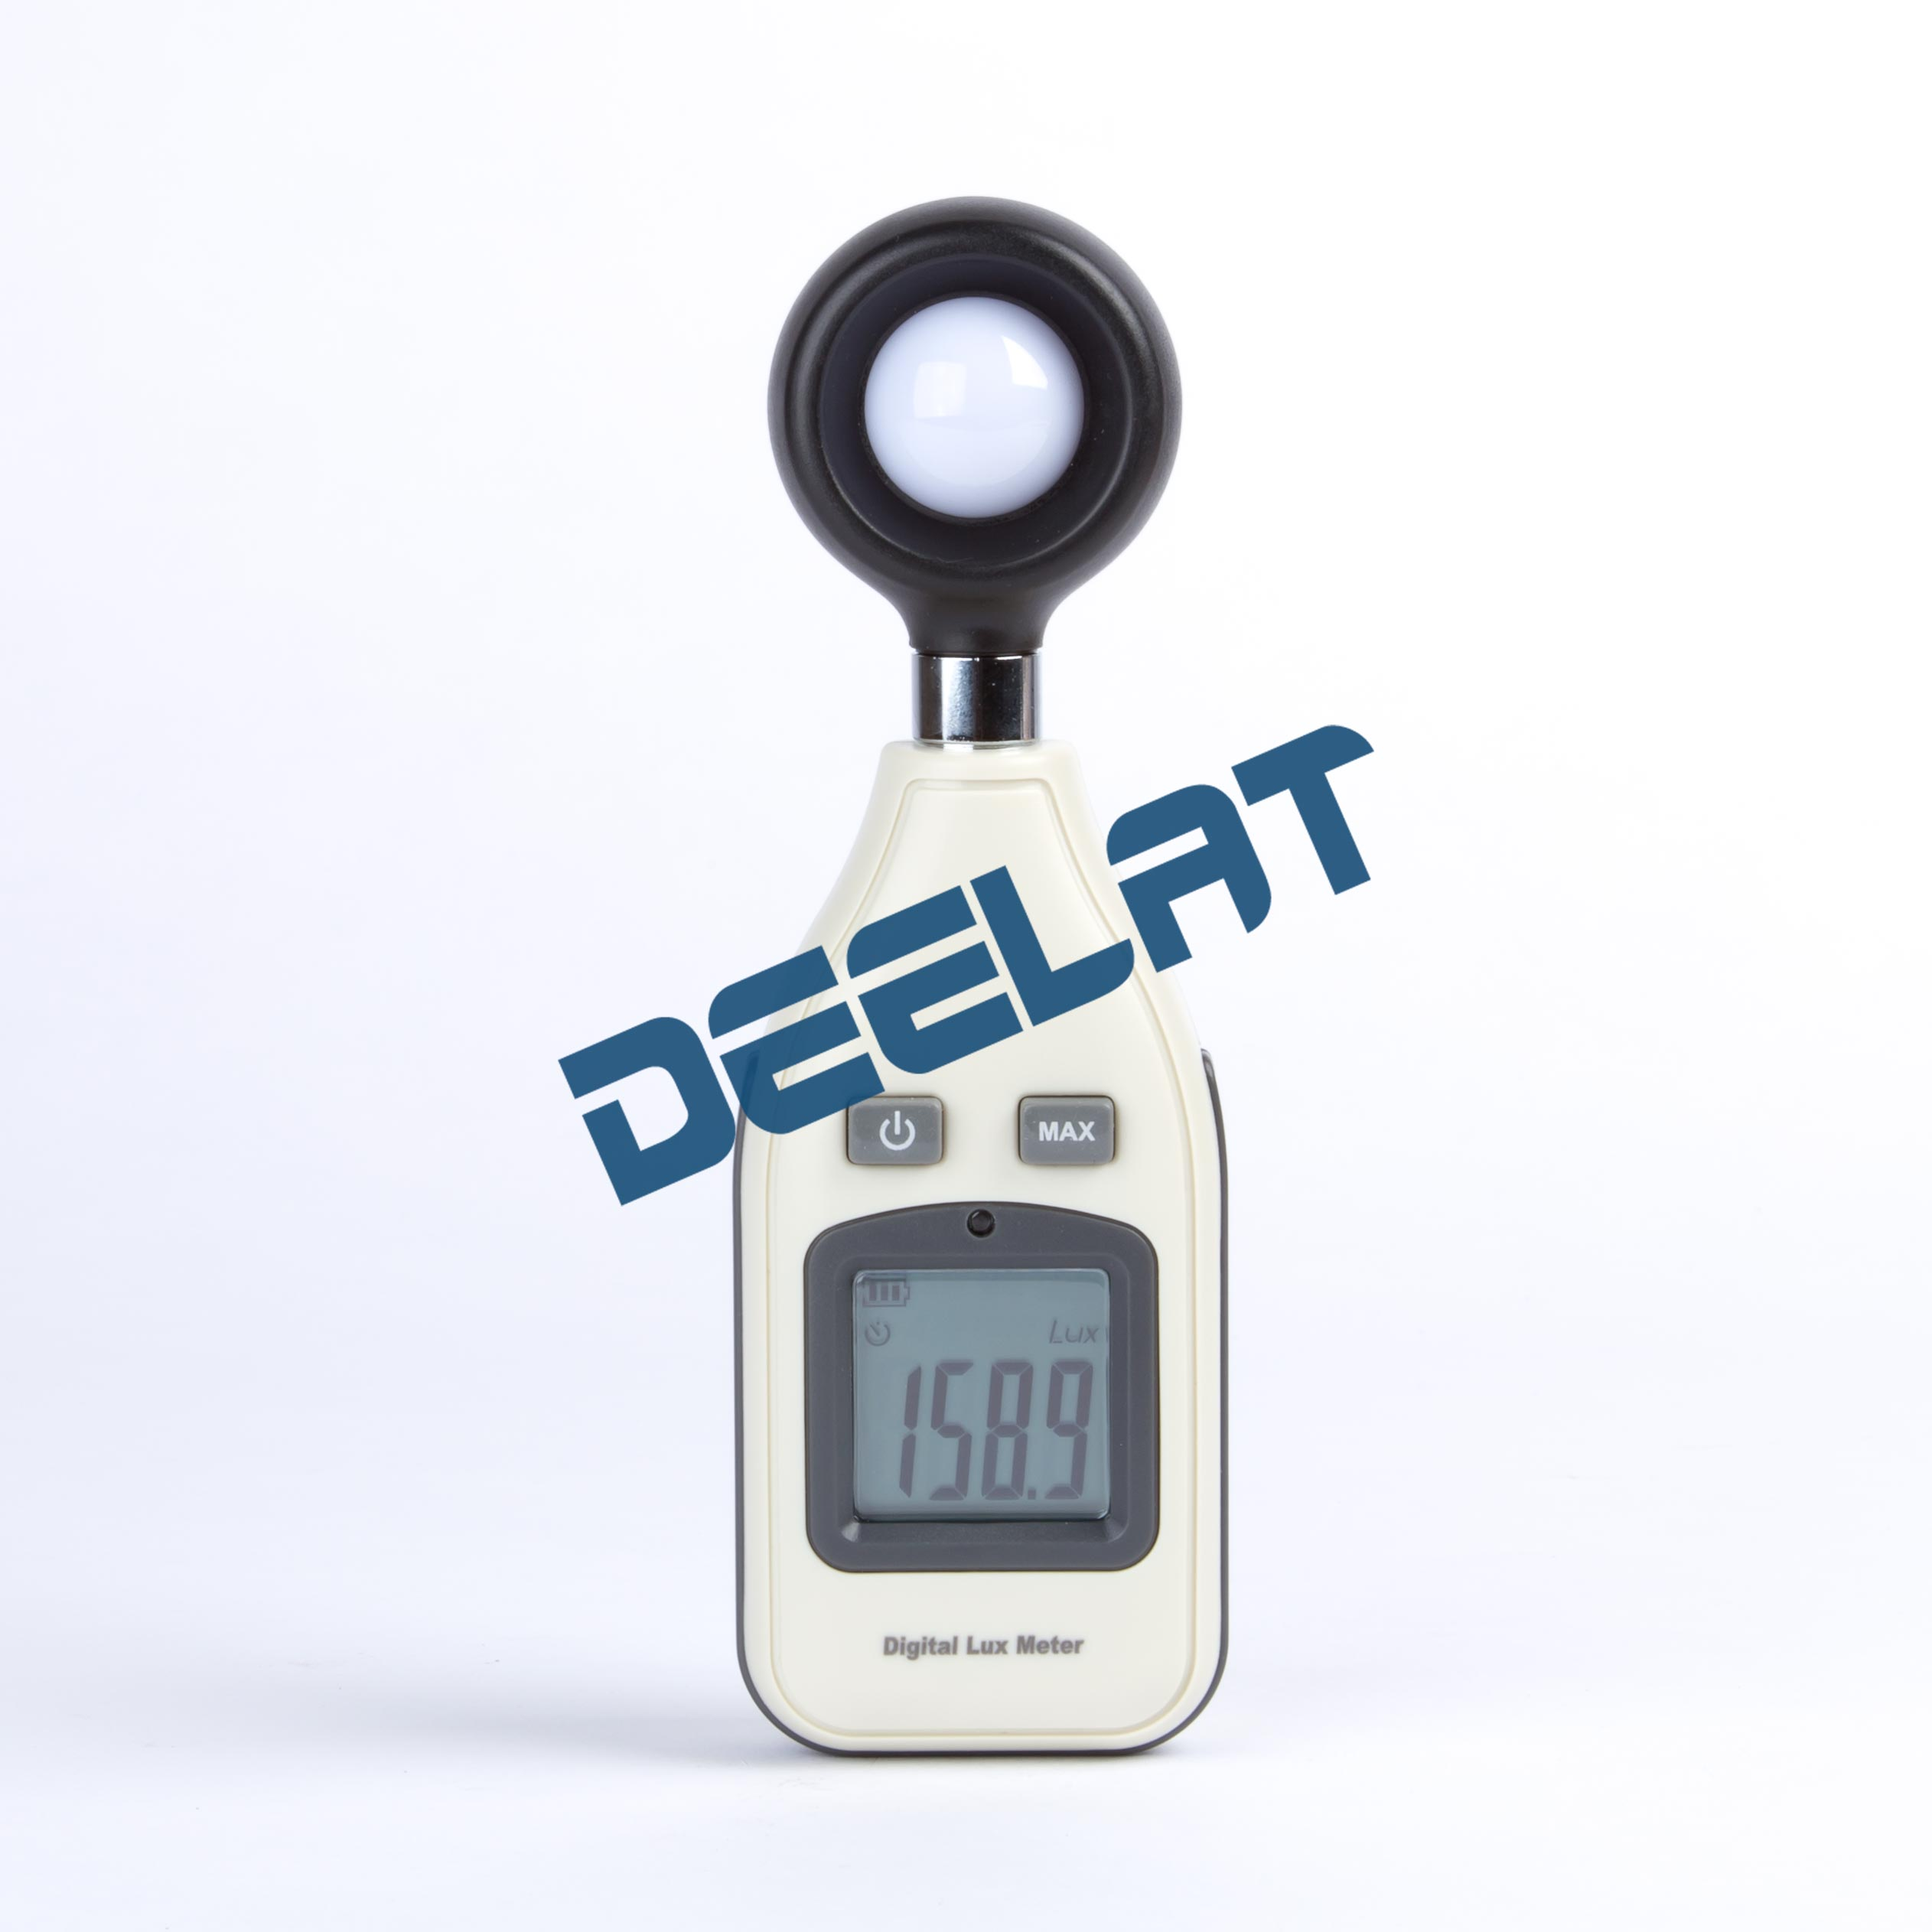 Digital Lux Meter : Deelat page solar powered gable fans sizes uses